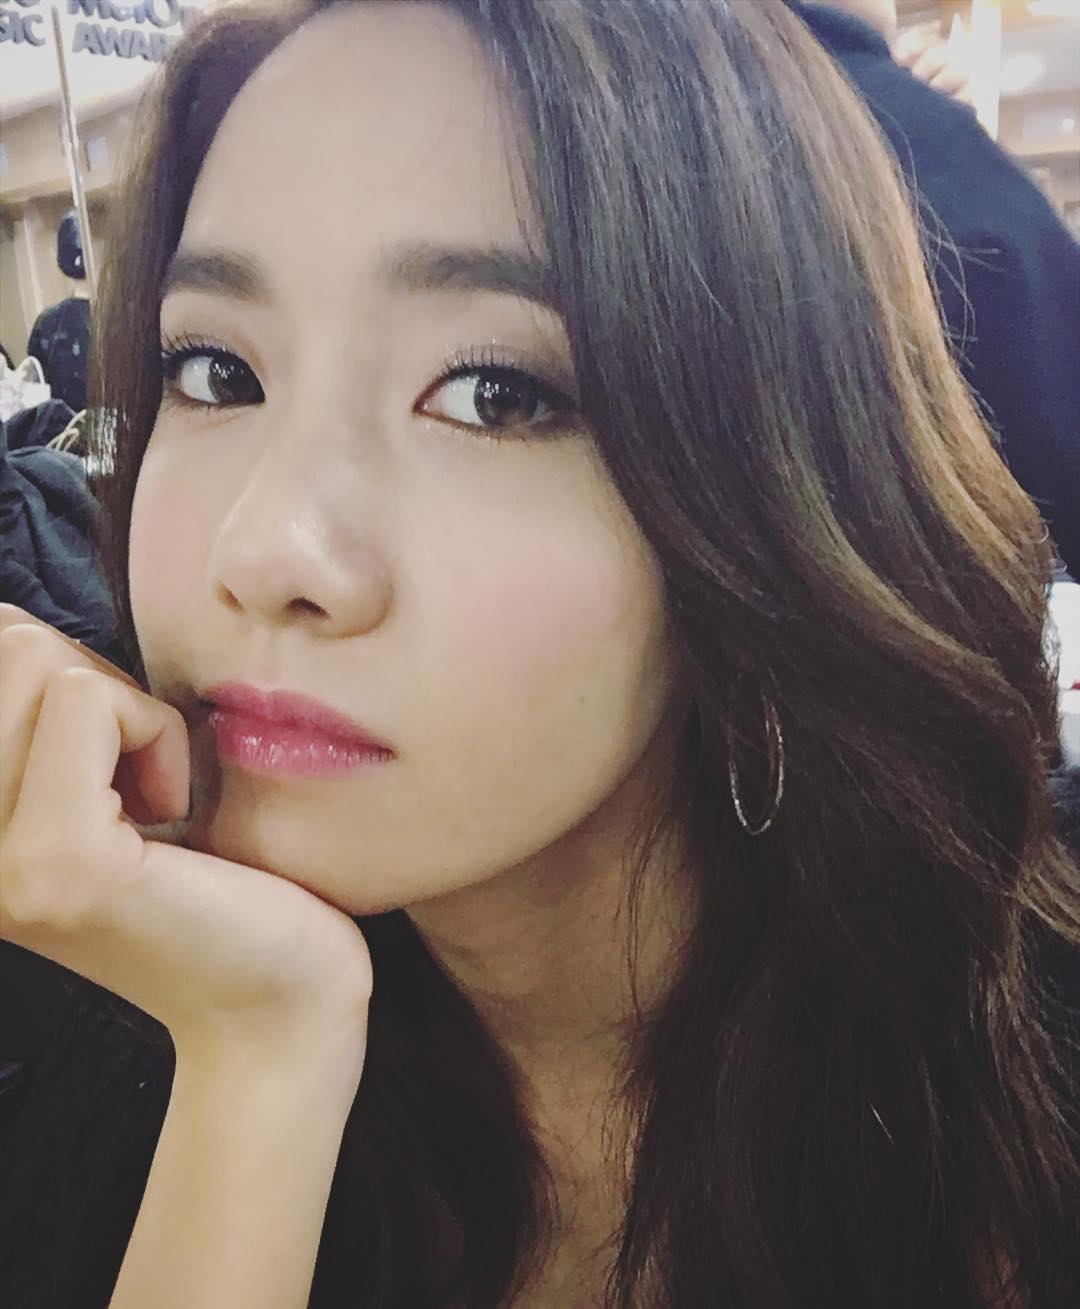 SNSD YoonA greets fans with her gorgeous selfie